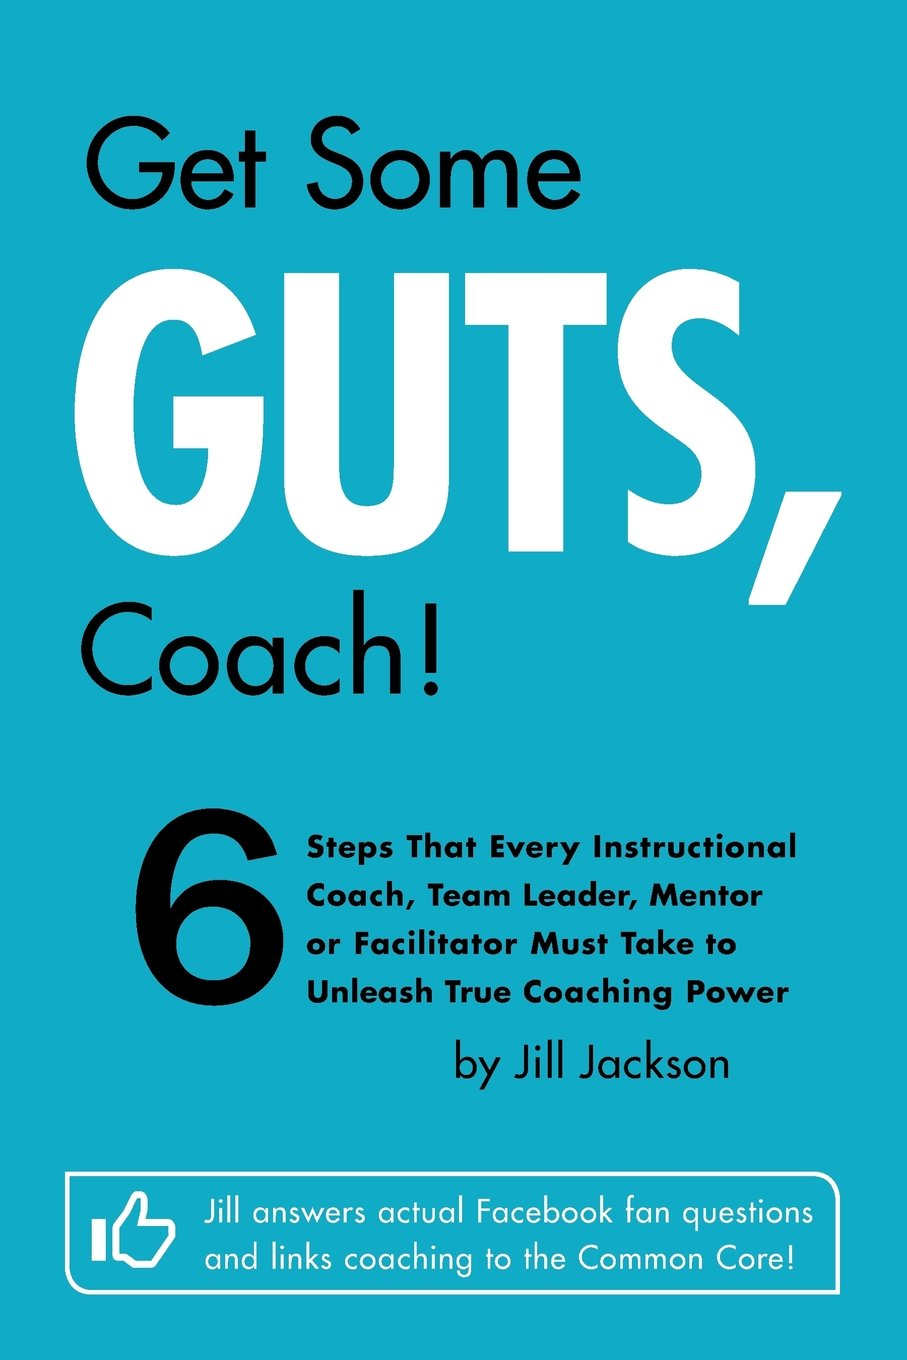 Get some guts coach jill jackson 9781478701262 amazon books fandeluxe Image collections